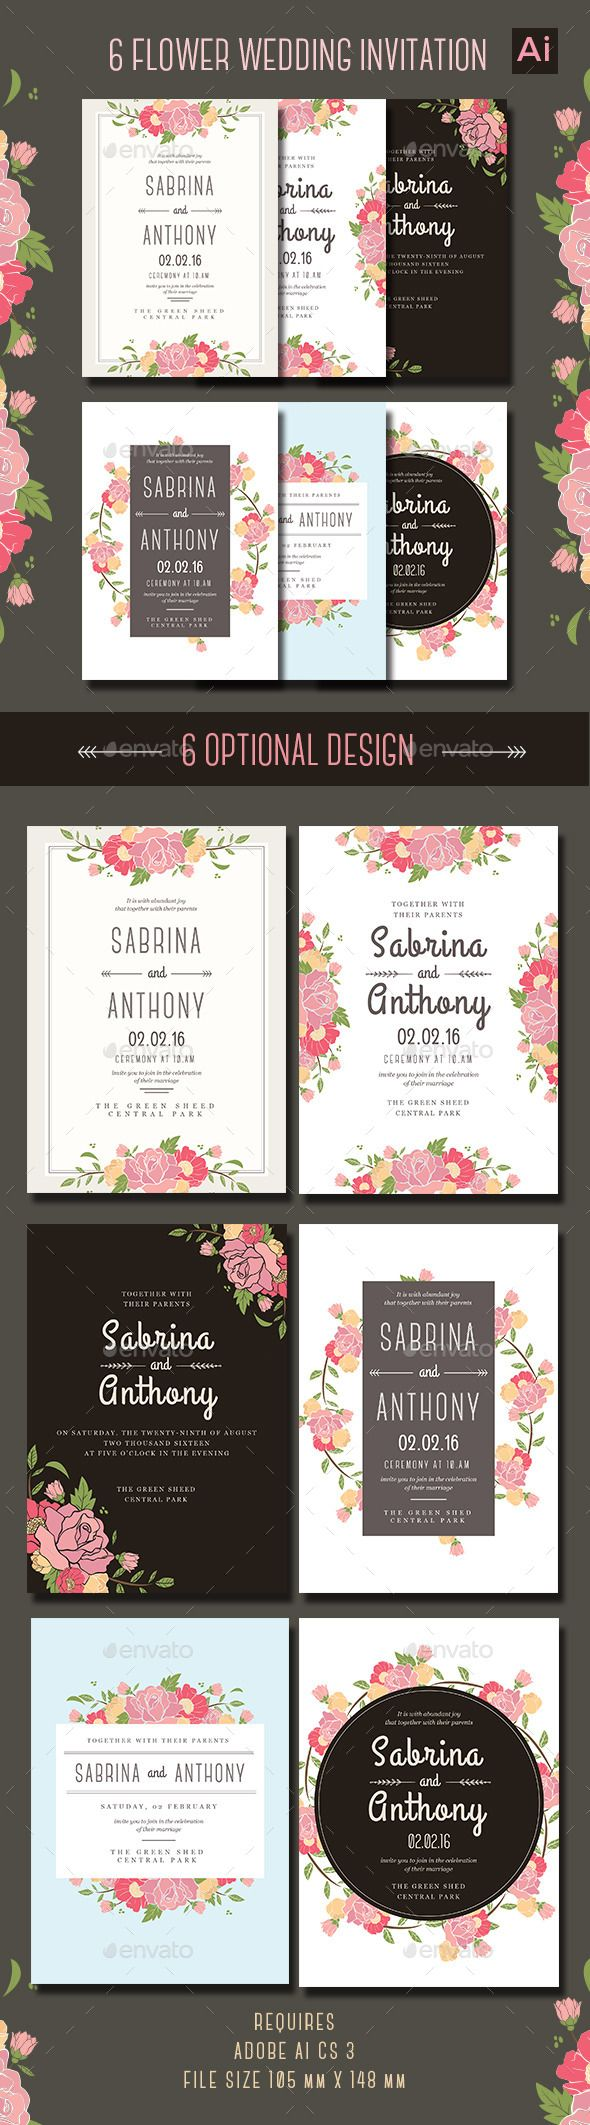 6 floral wedding invitation 6 floral wedding invitation template ai design download httpgraphicriver stopboris Image collections